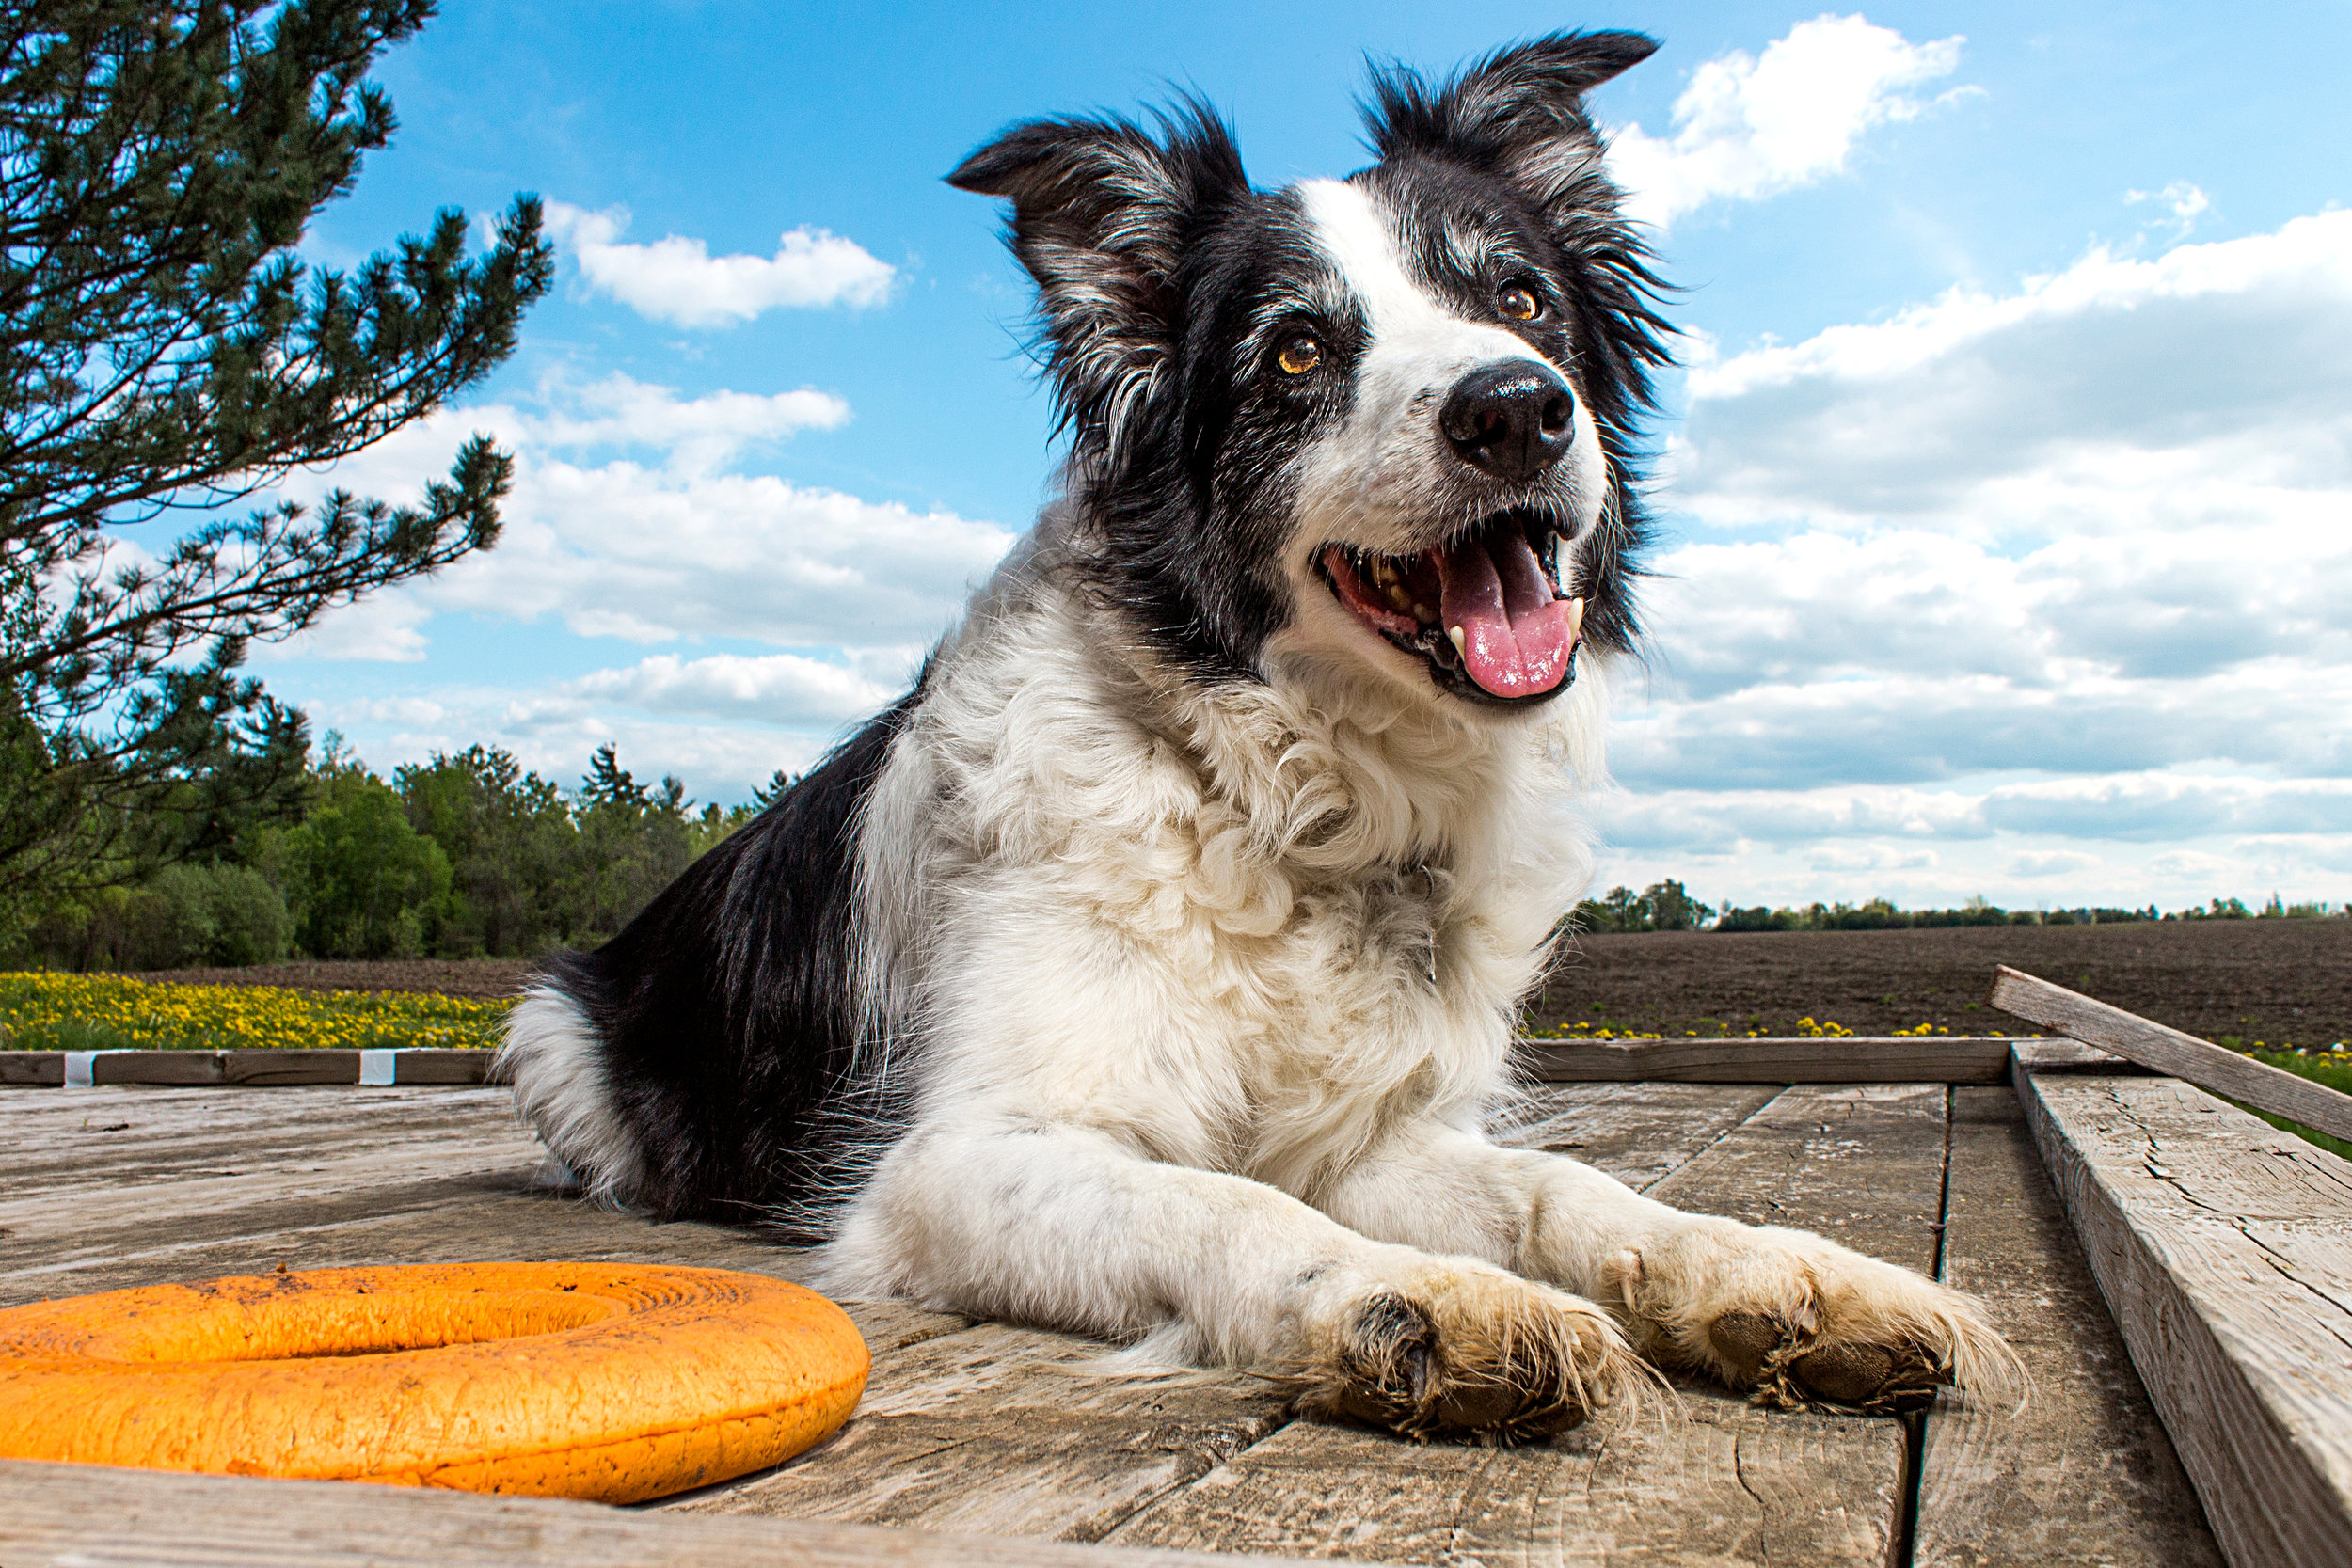 Image of a Border Collie Outside on the Farm by Brent D'Silva. Georgetown, Ontario.